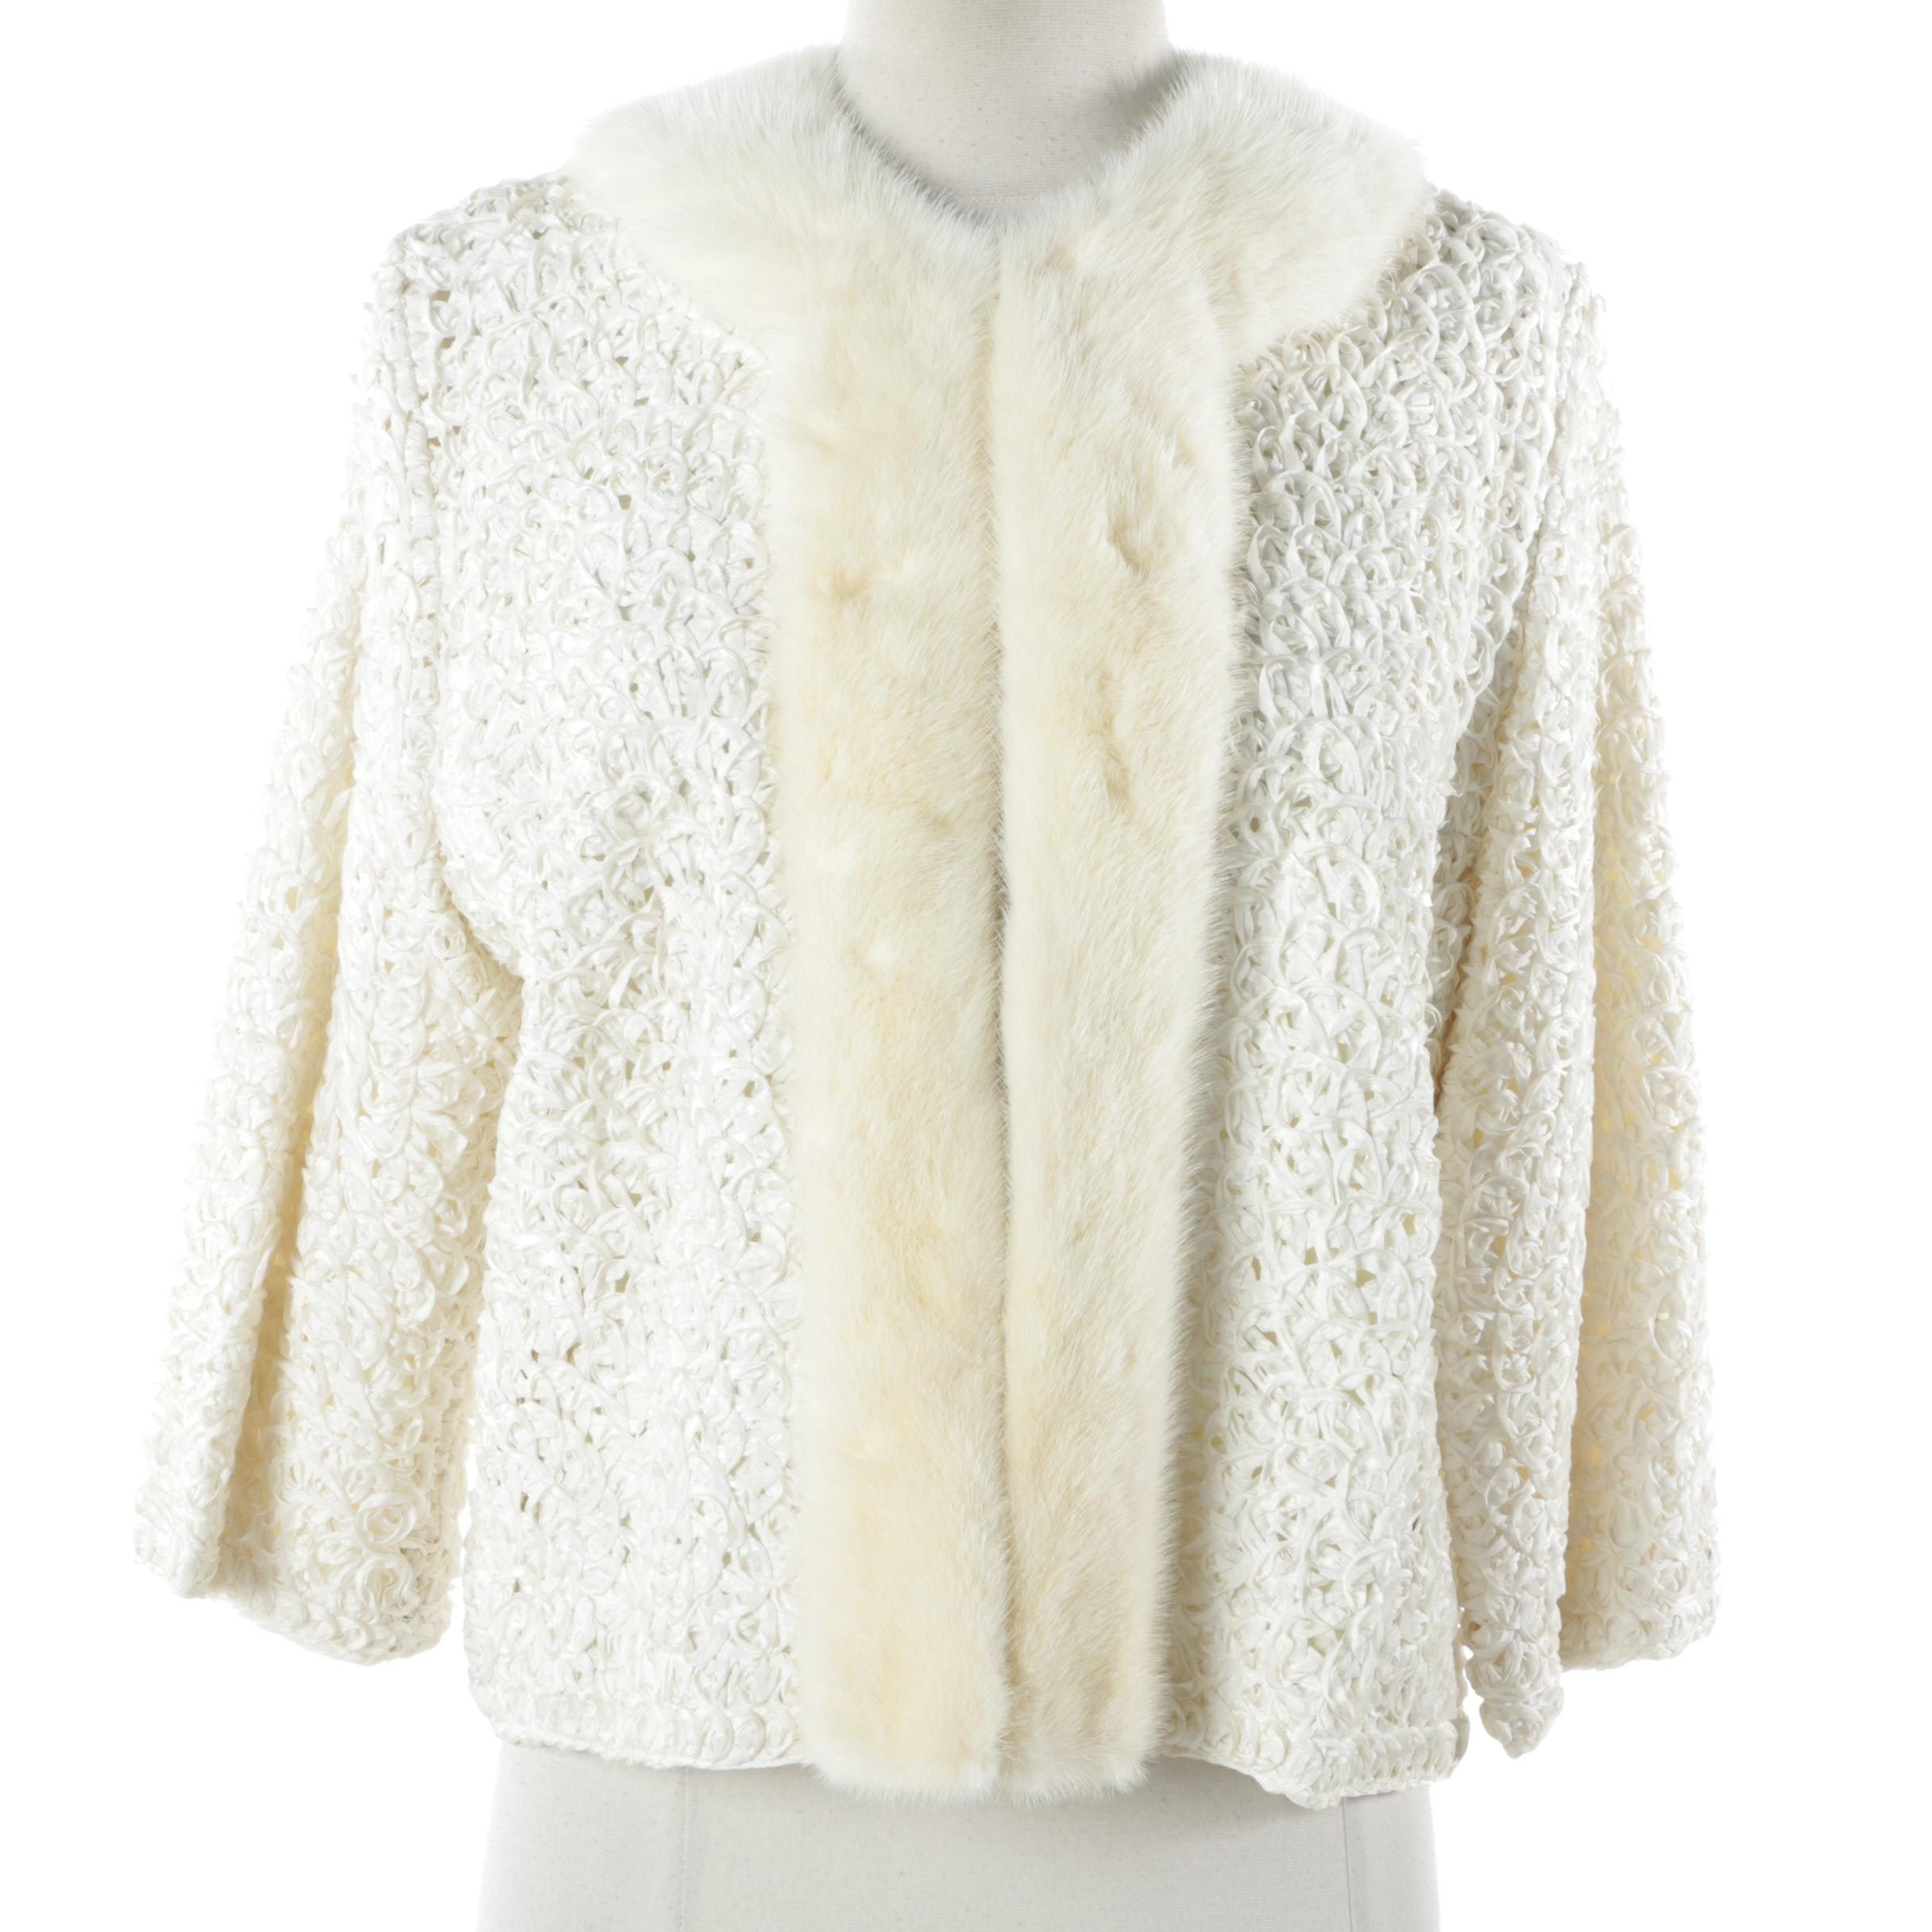 Circa 1950s Vintage Davidson's White Ribbon Jacket with Mink Trim